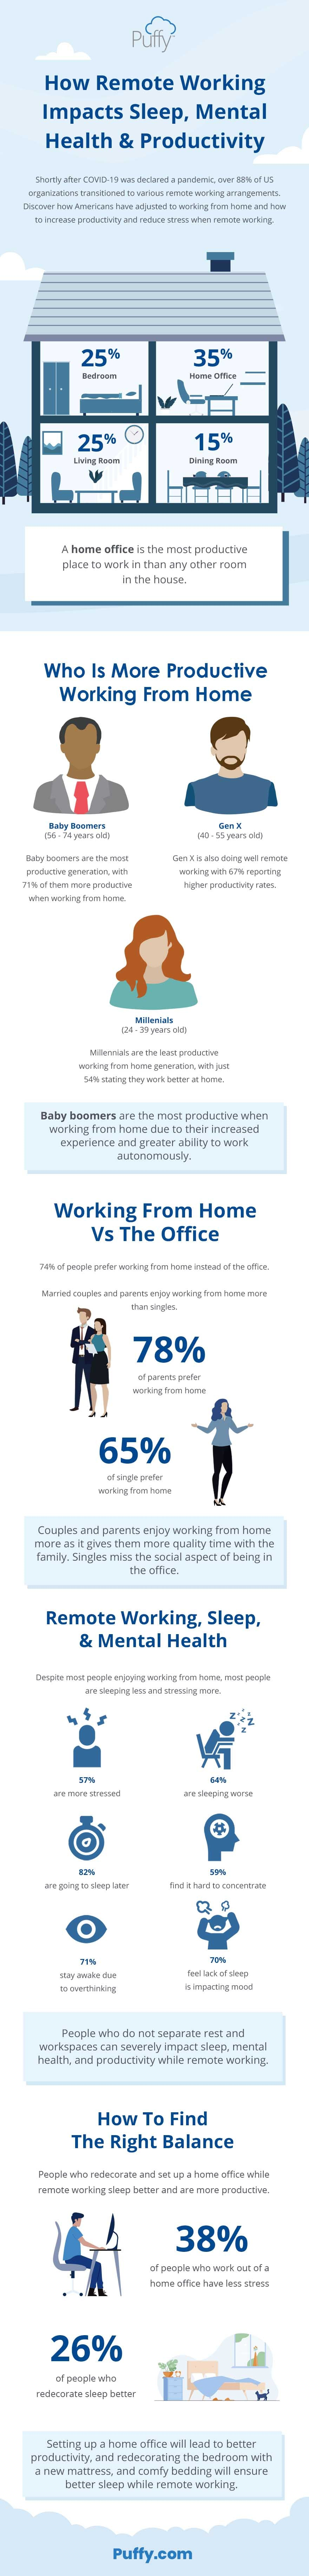 Puffy Sleep Survey Data for Work From Home in 2020